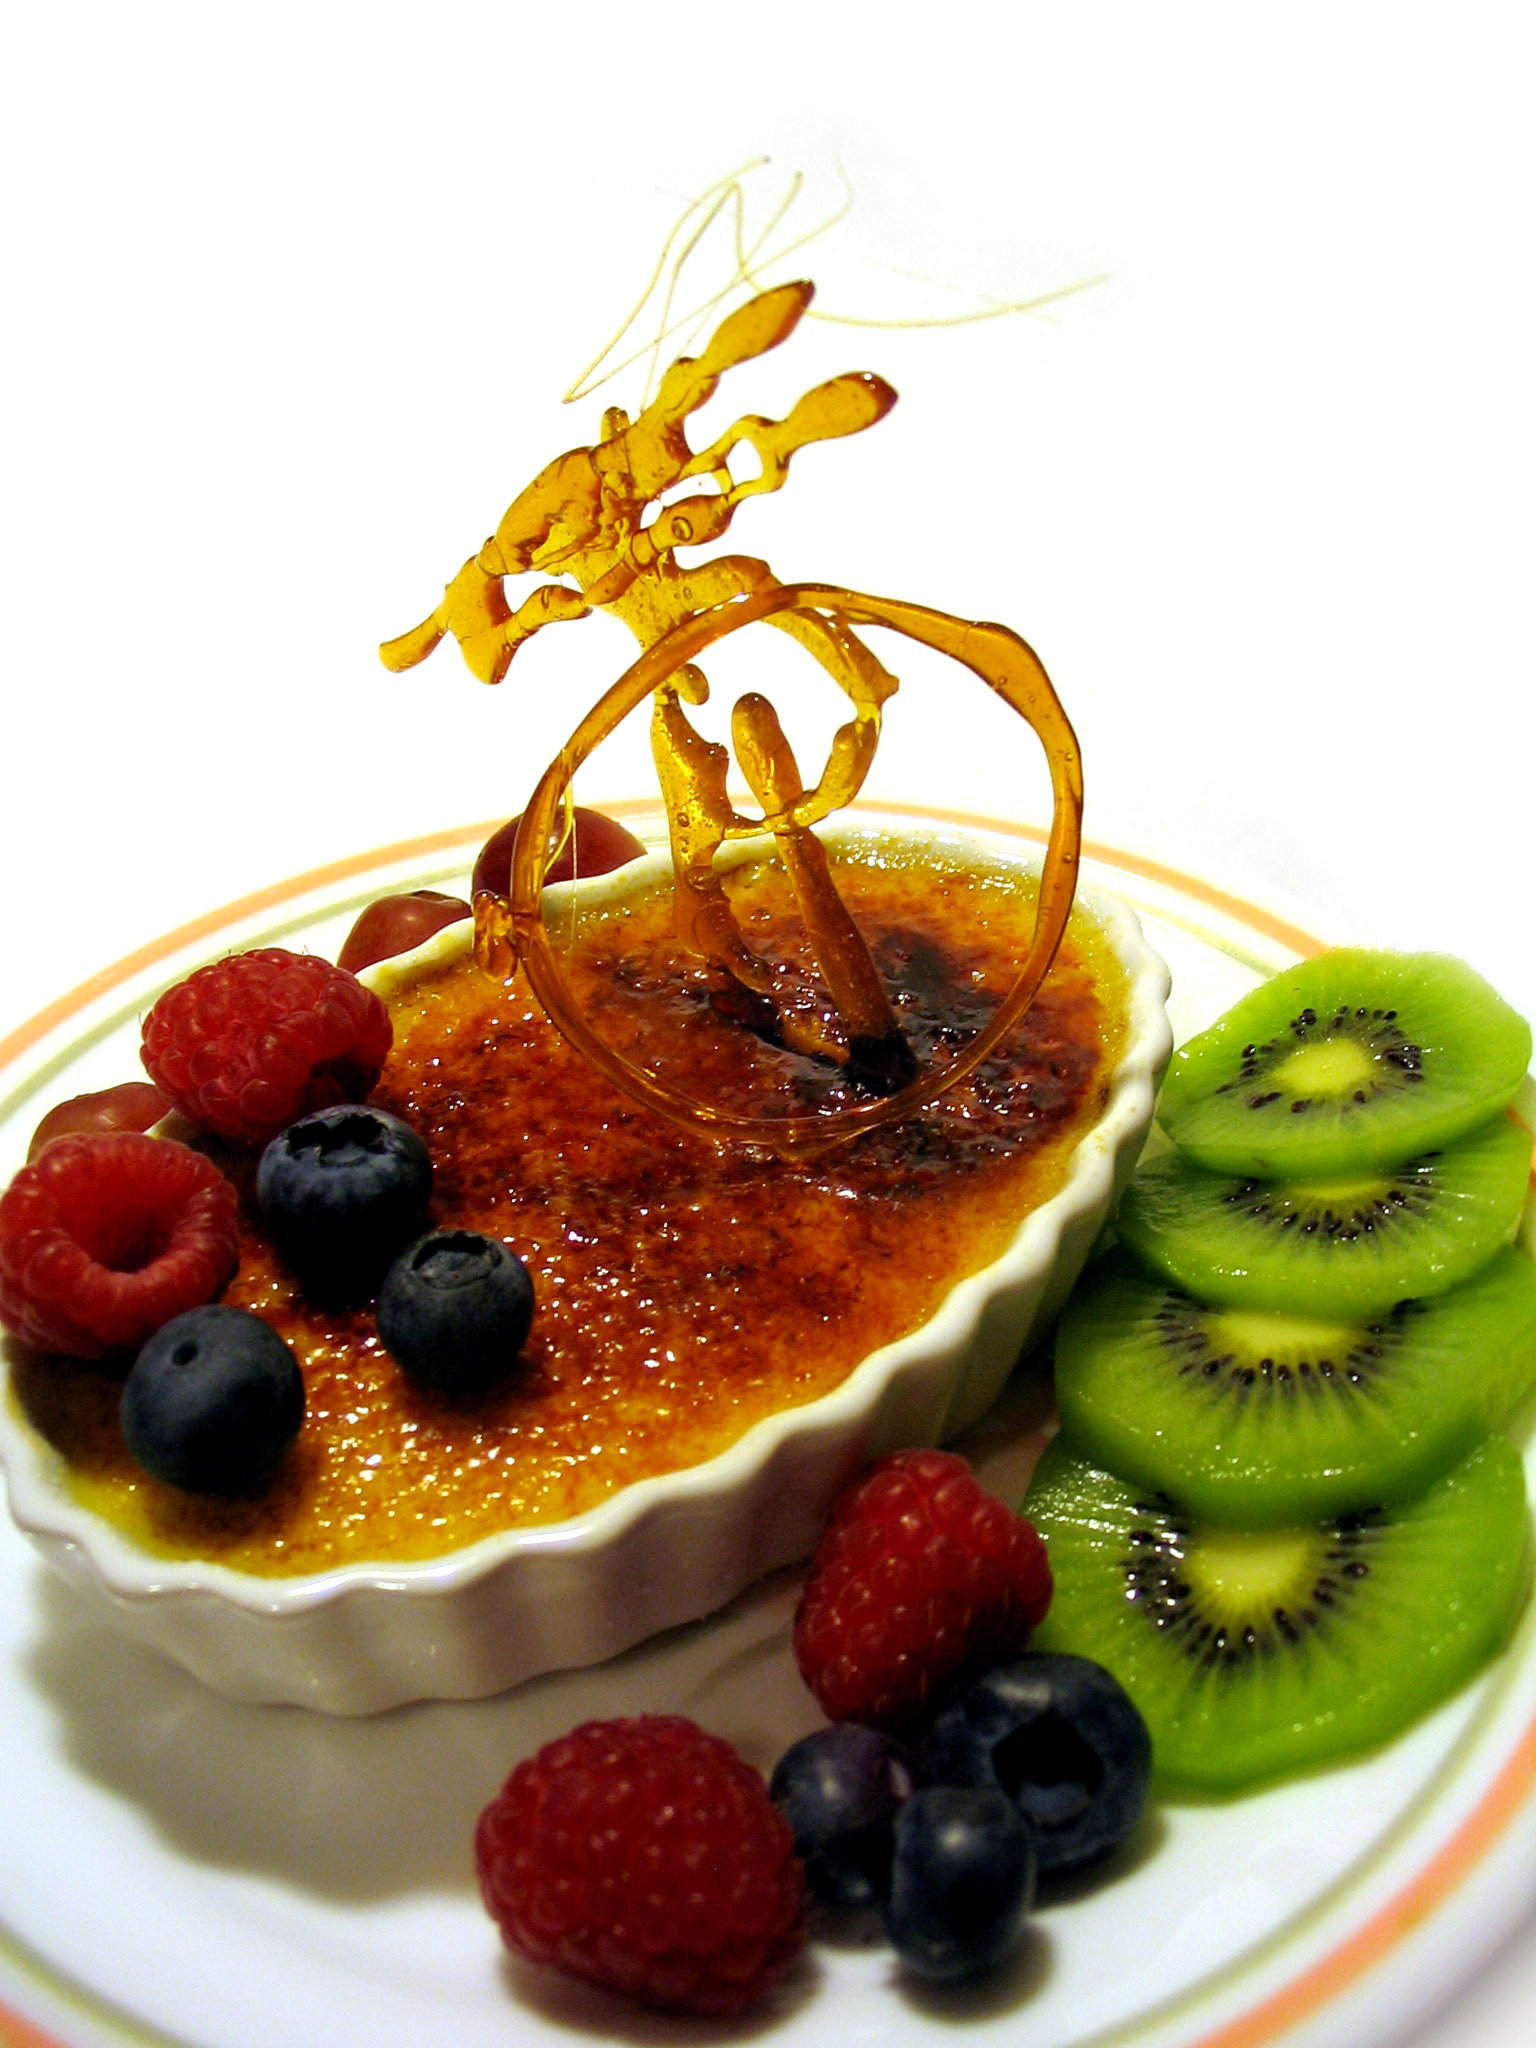 https://i2.wp.com/www.eatfoo.com/files/images/20060702_-_creme_brulee/IMG_6180.jpg